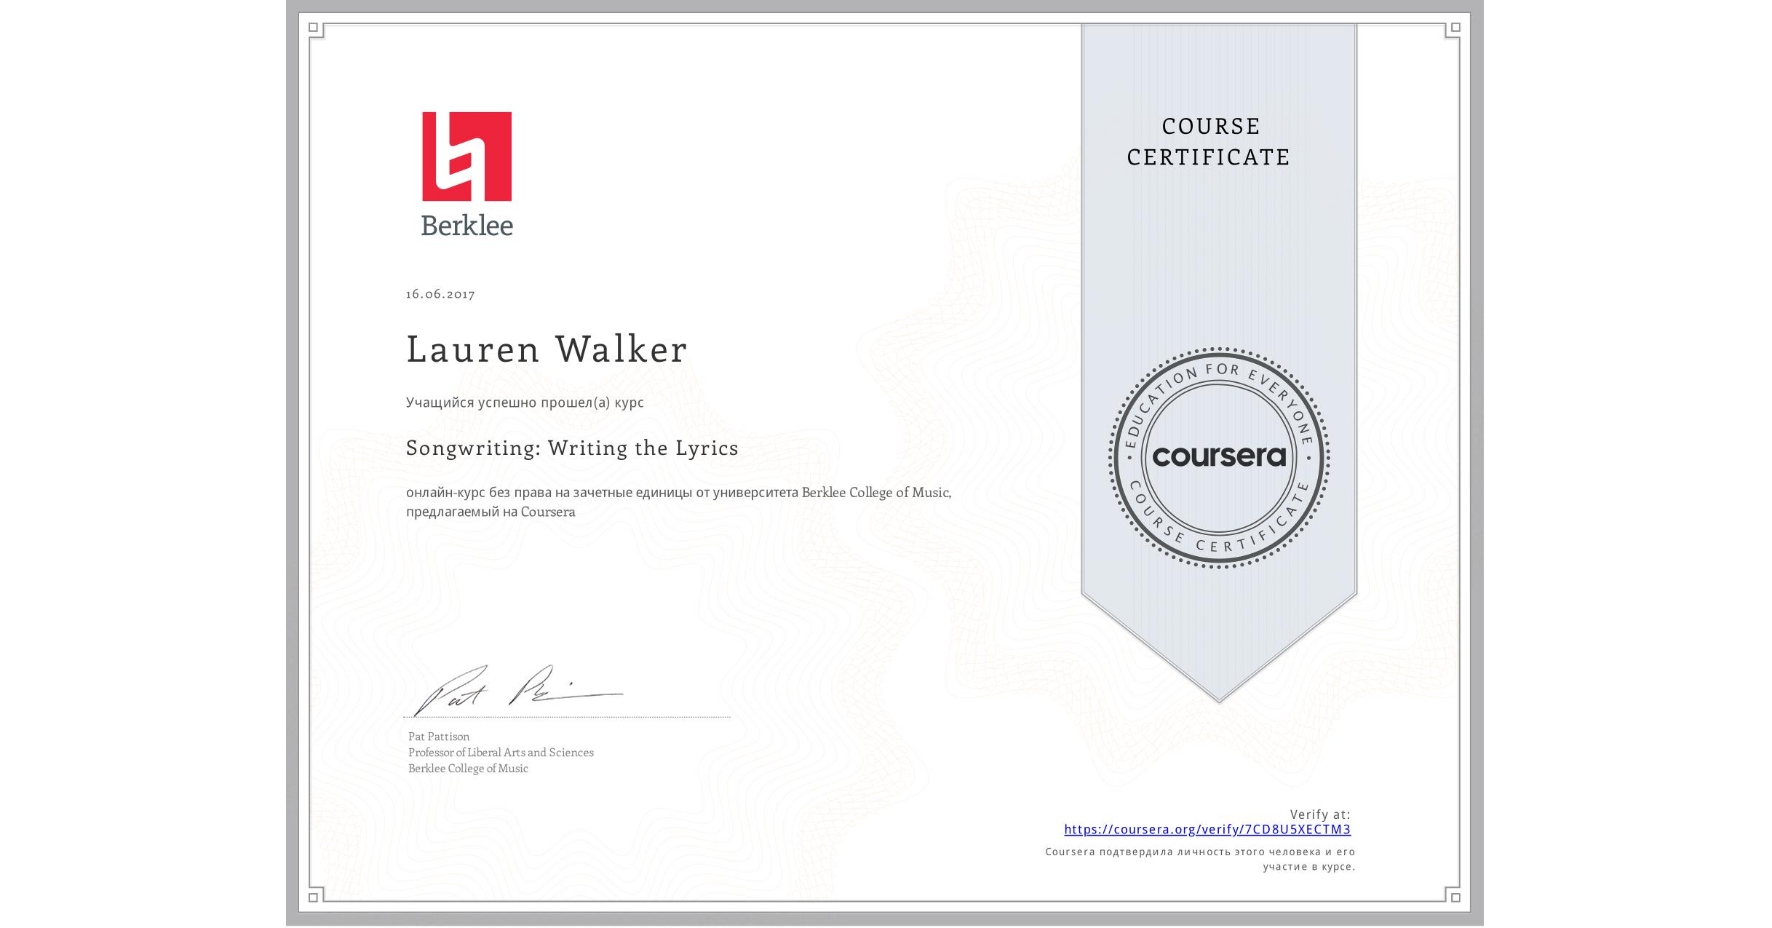 View certificate for Lauren Walker, Songwriting: Writing the Lyrics, an online non-credit course authorized by Berklee College of Music and offered through Coursera